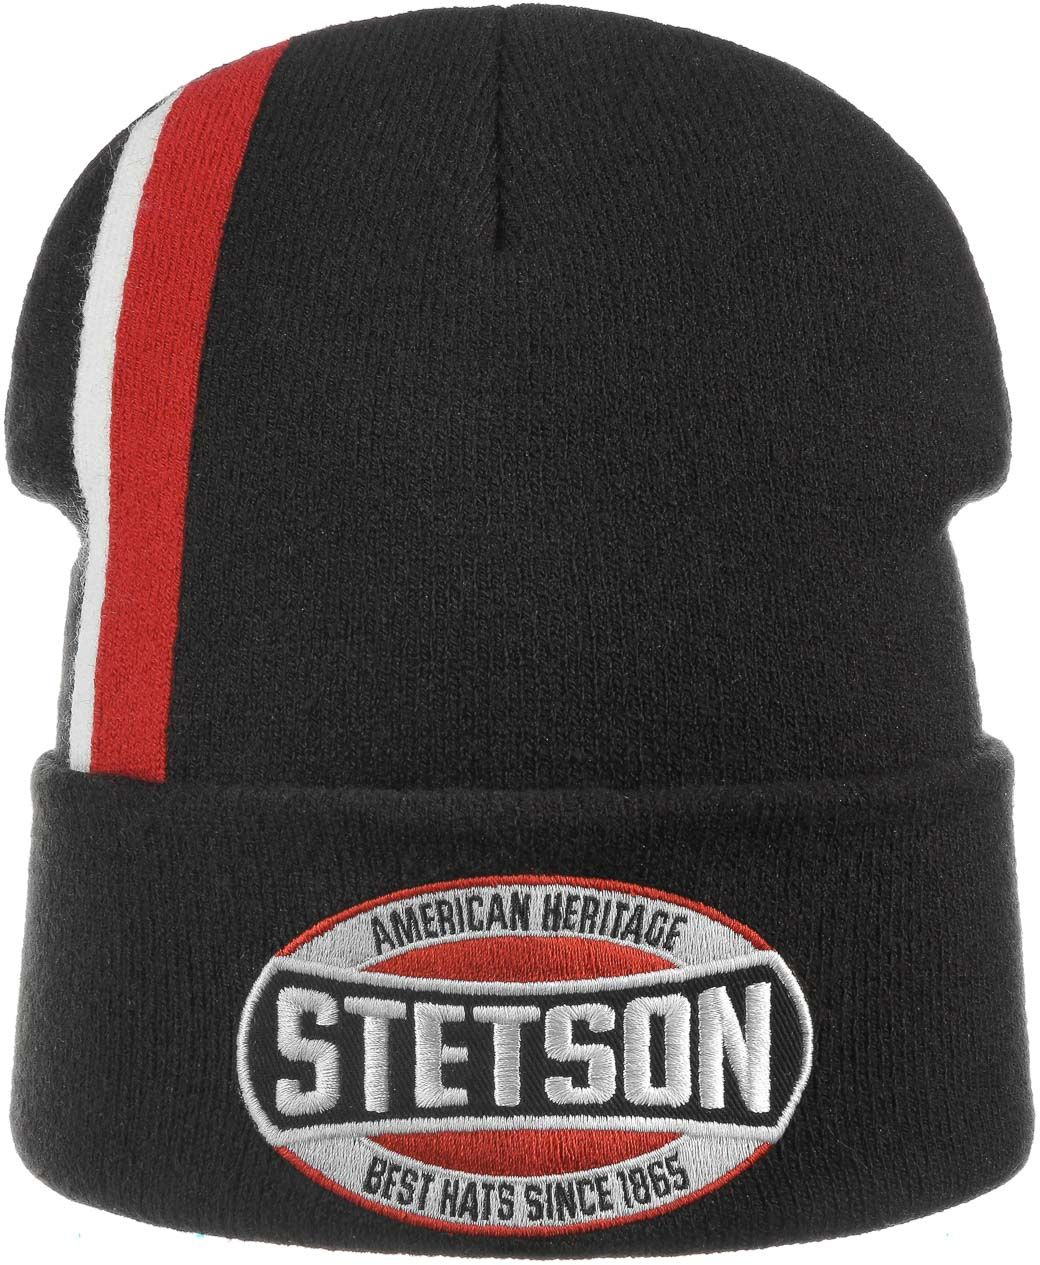 American Heritage Beanie Hat by Stetson, czarny, One Size